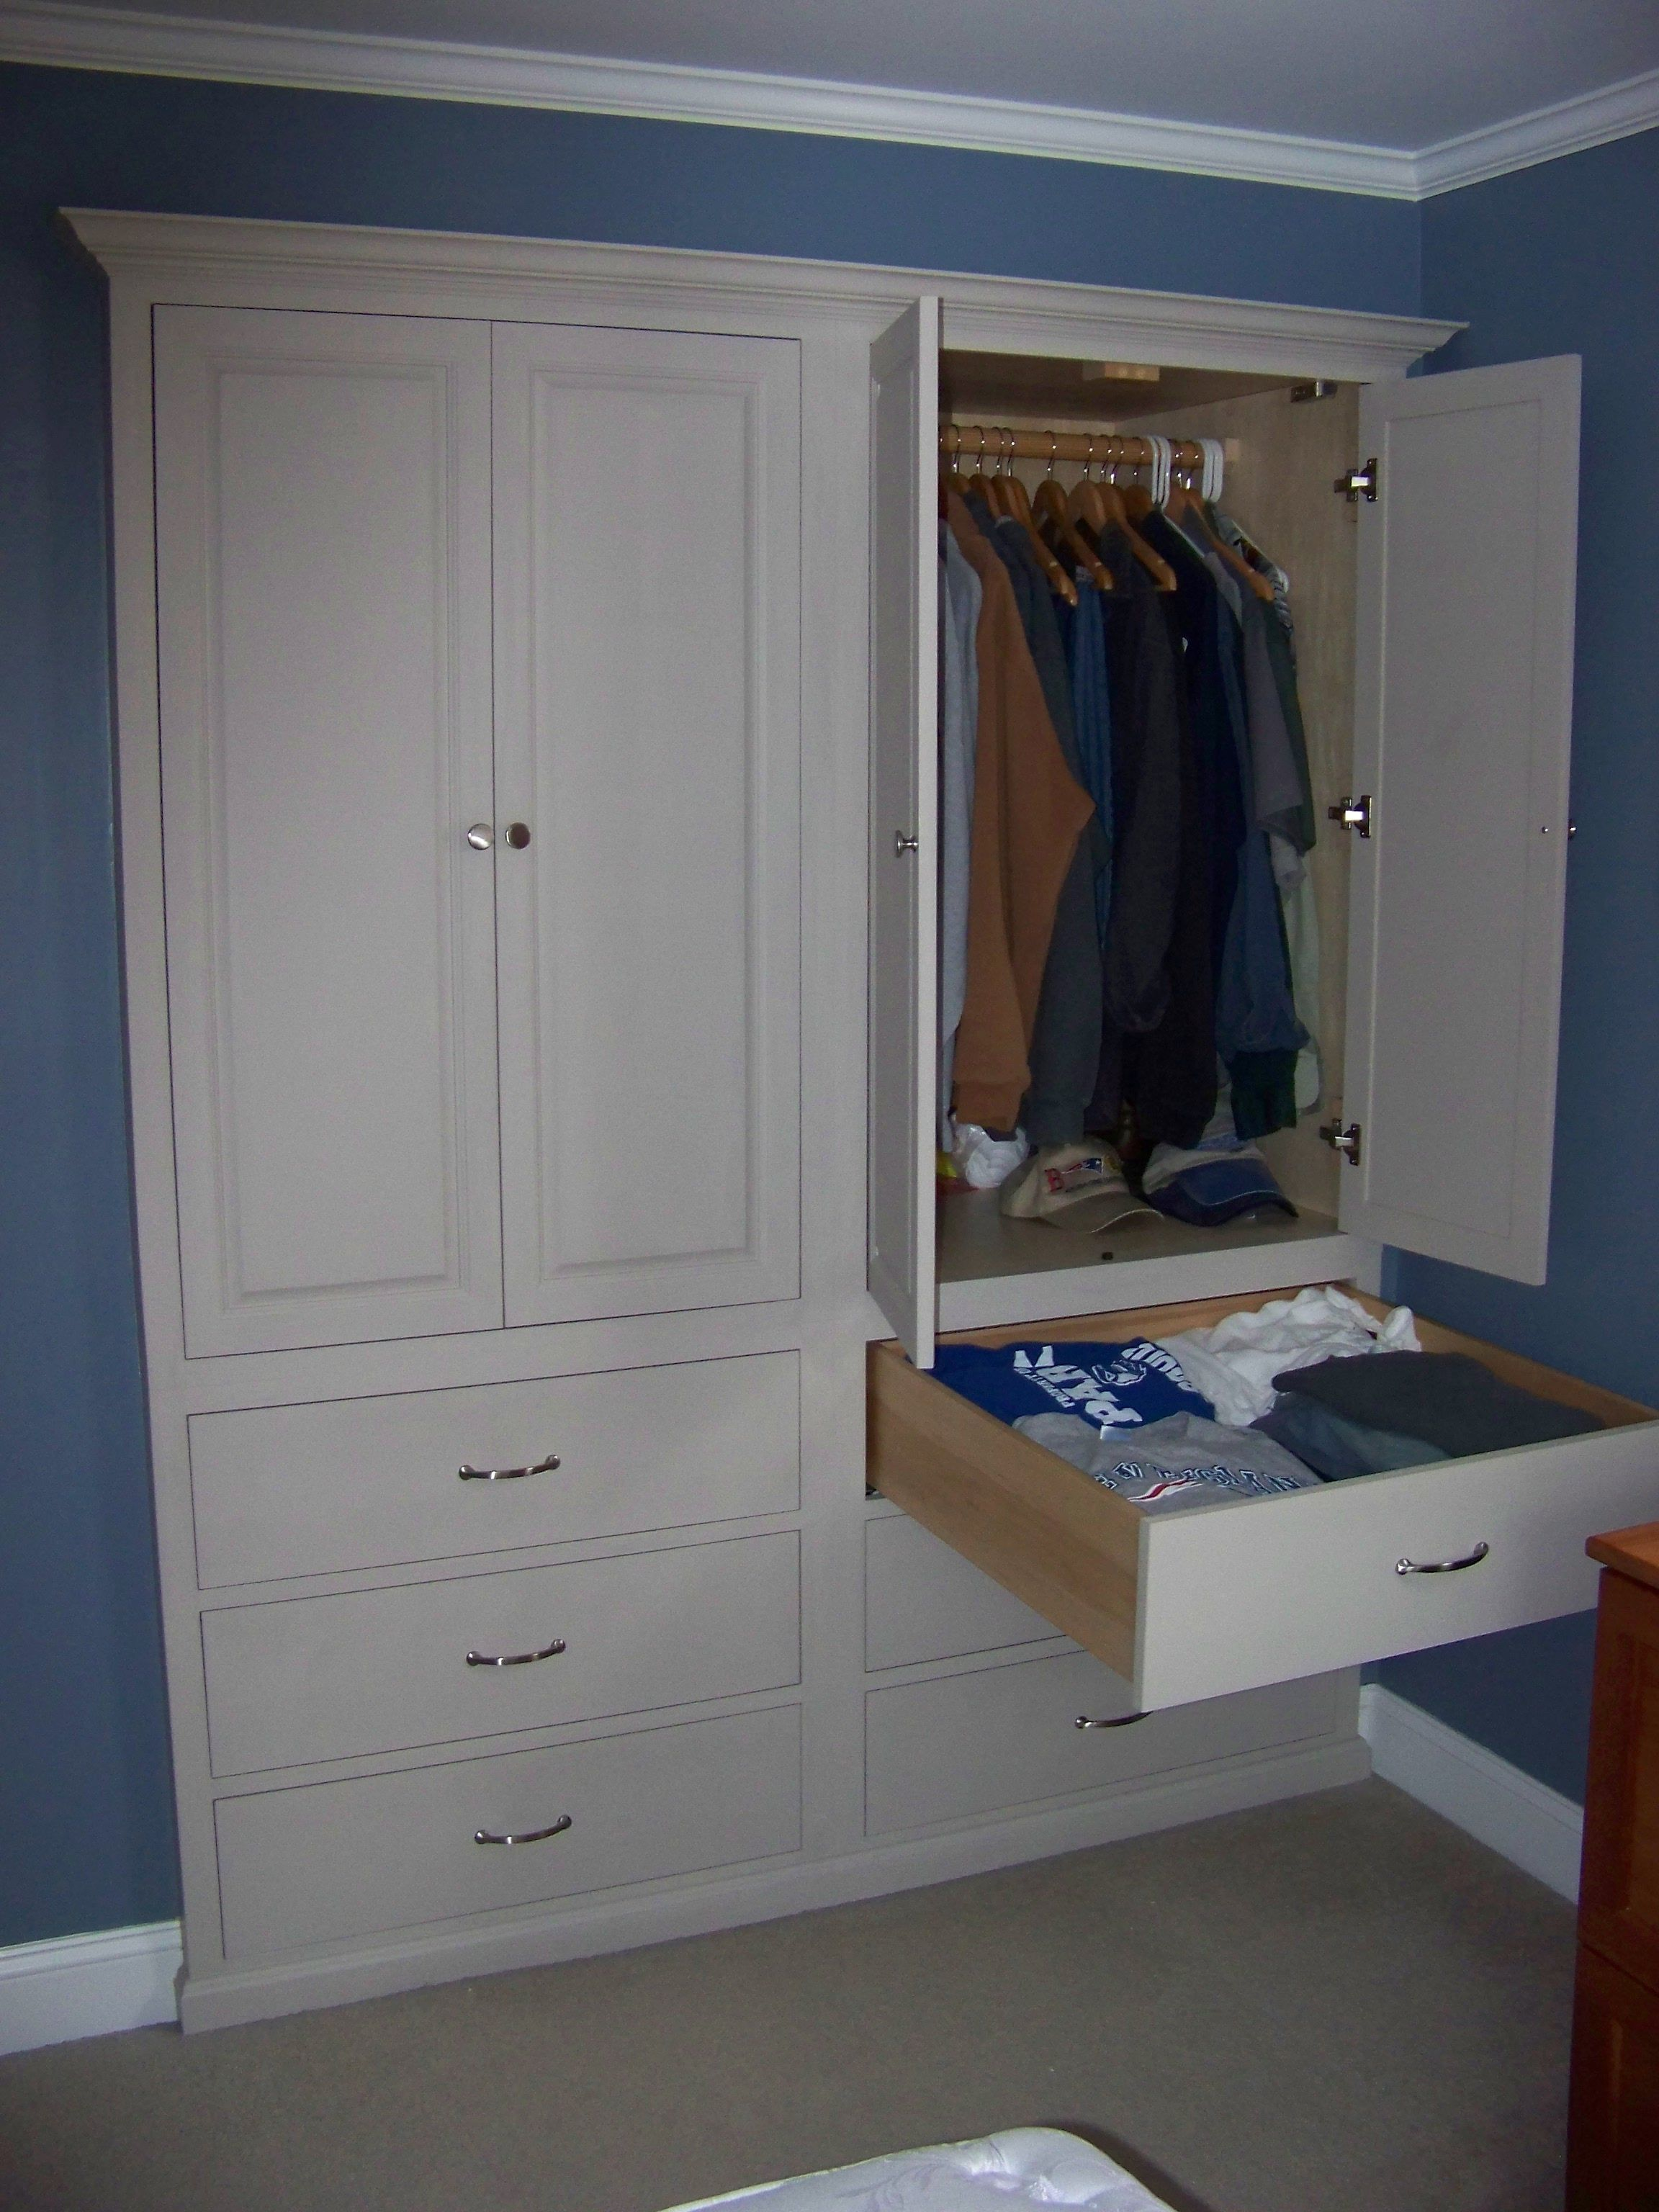 This Cabinet Was Built And Installed In A Standard Double Sliding Door Closet